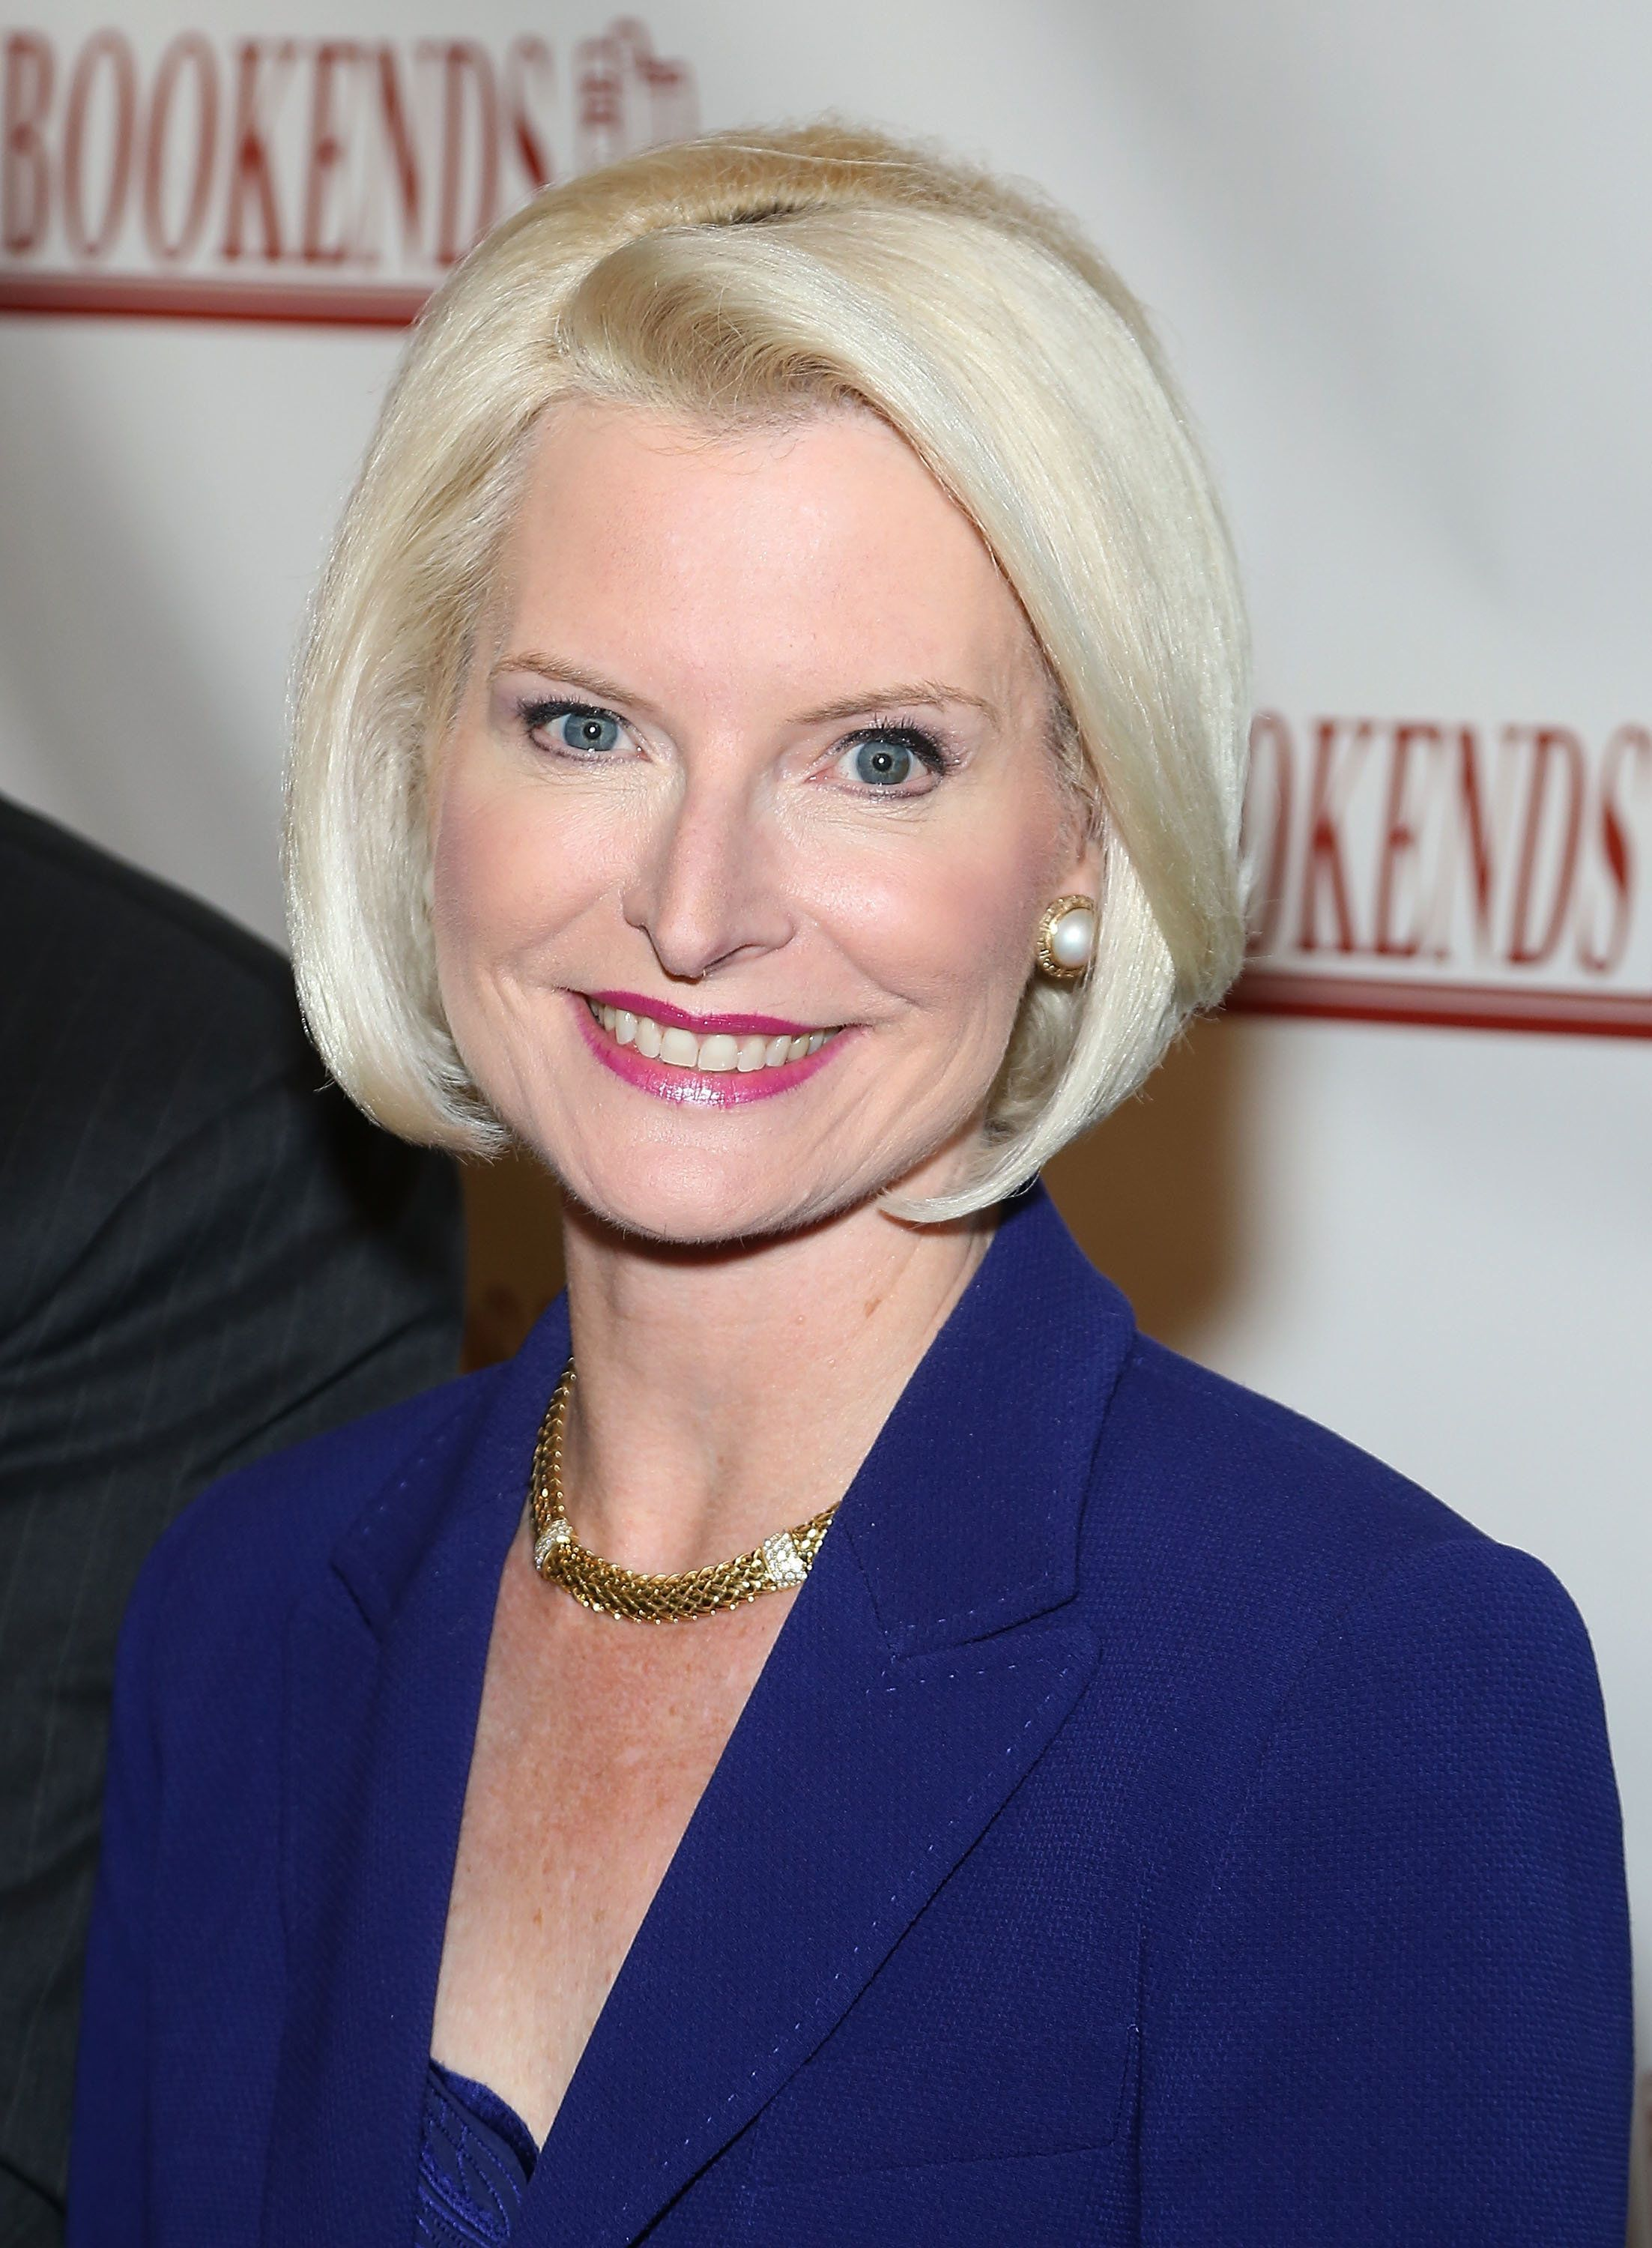 RIDGEWOOD, NJ - OCTOBER 12:  Callista Gingrich signs copies of the book 'Treason & Hail To The Chief at Bookends Bookstore on October 12, 2016 in Ridgewood, New Jersey.  (Photo by Manny Carabel/Getty Images)